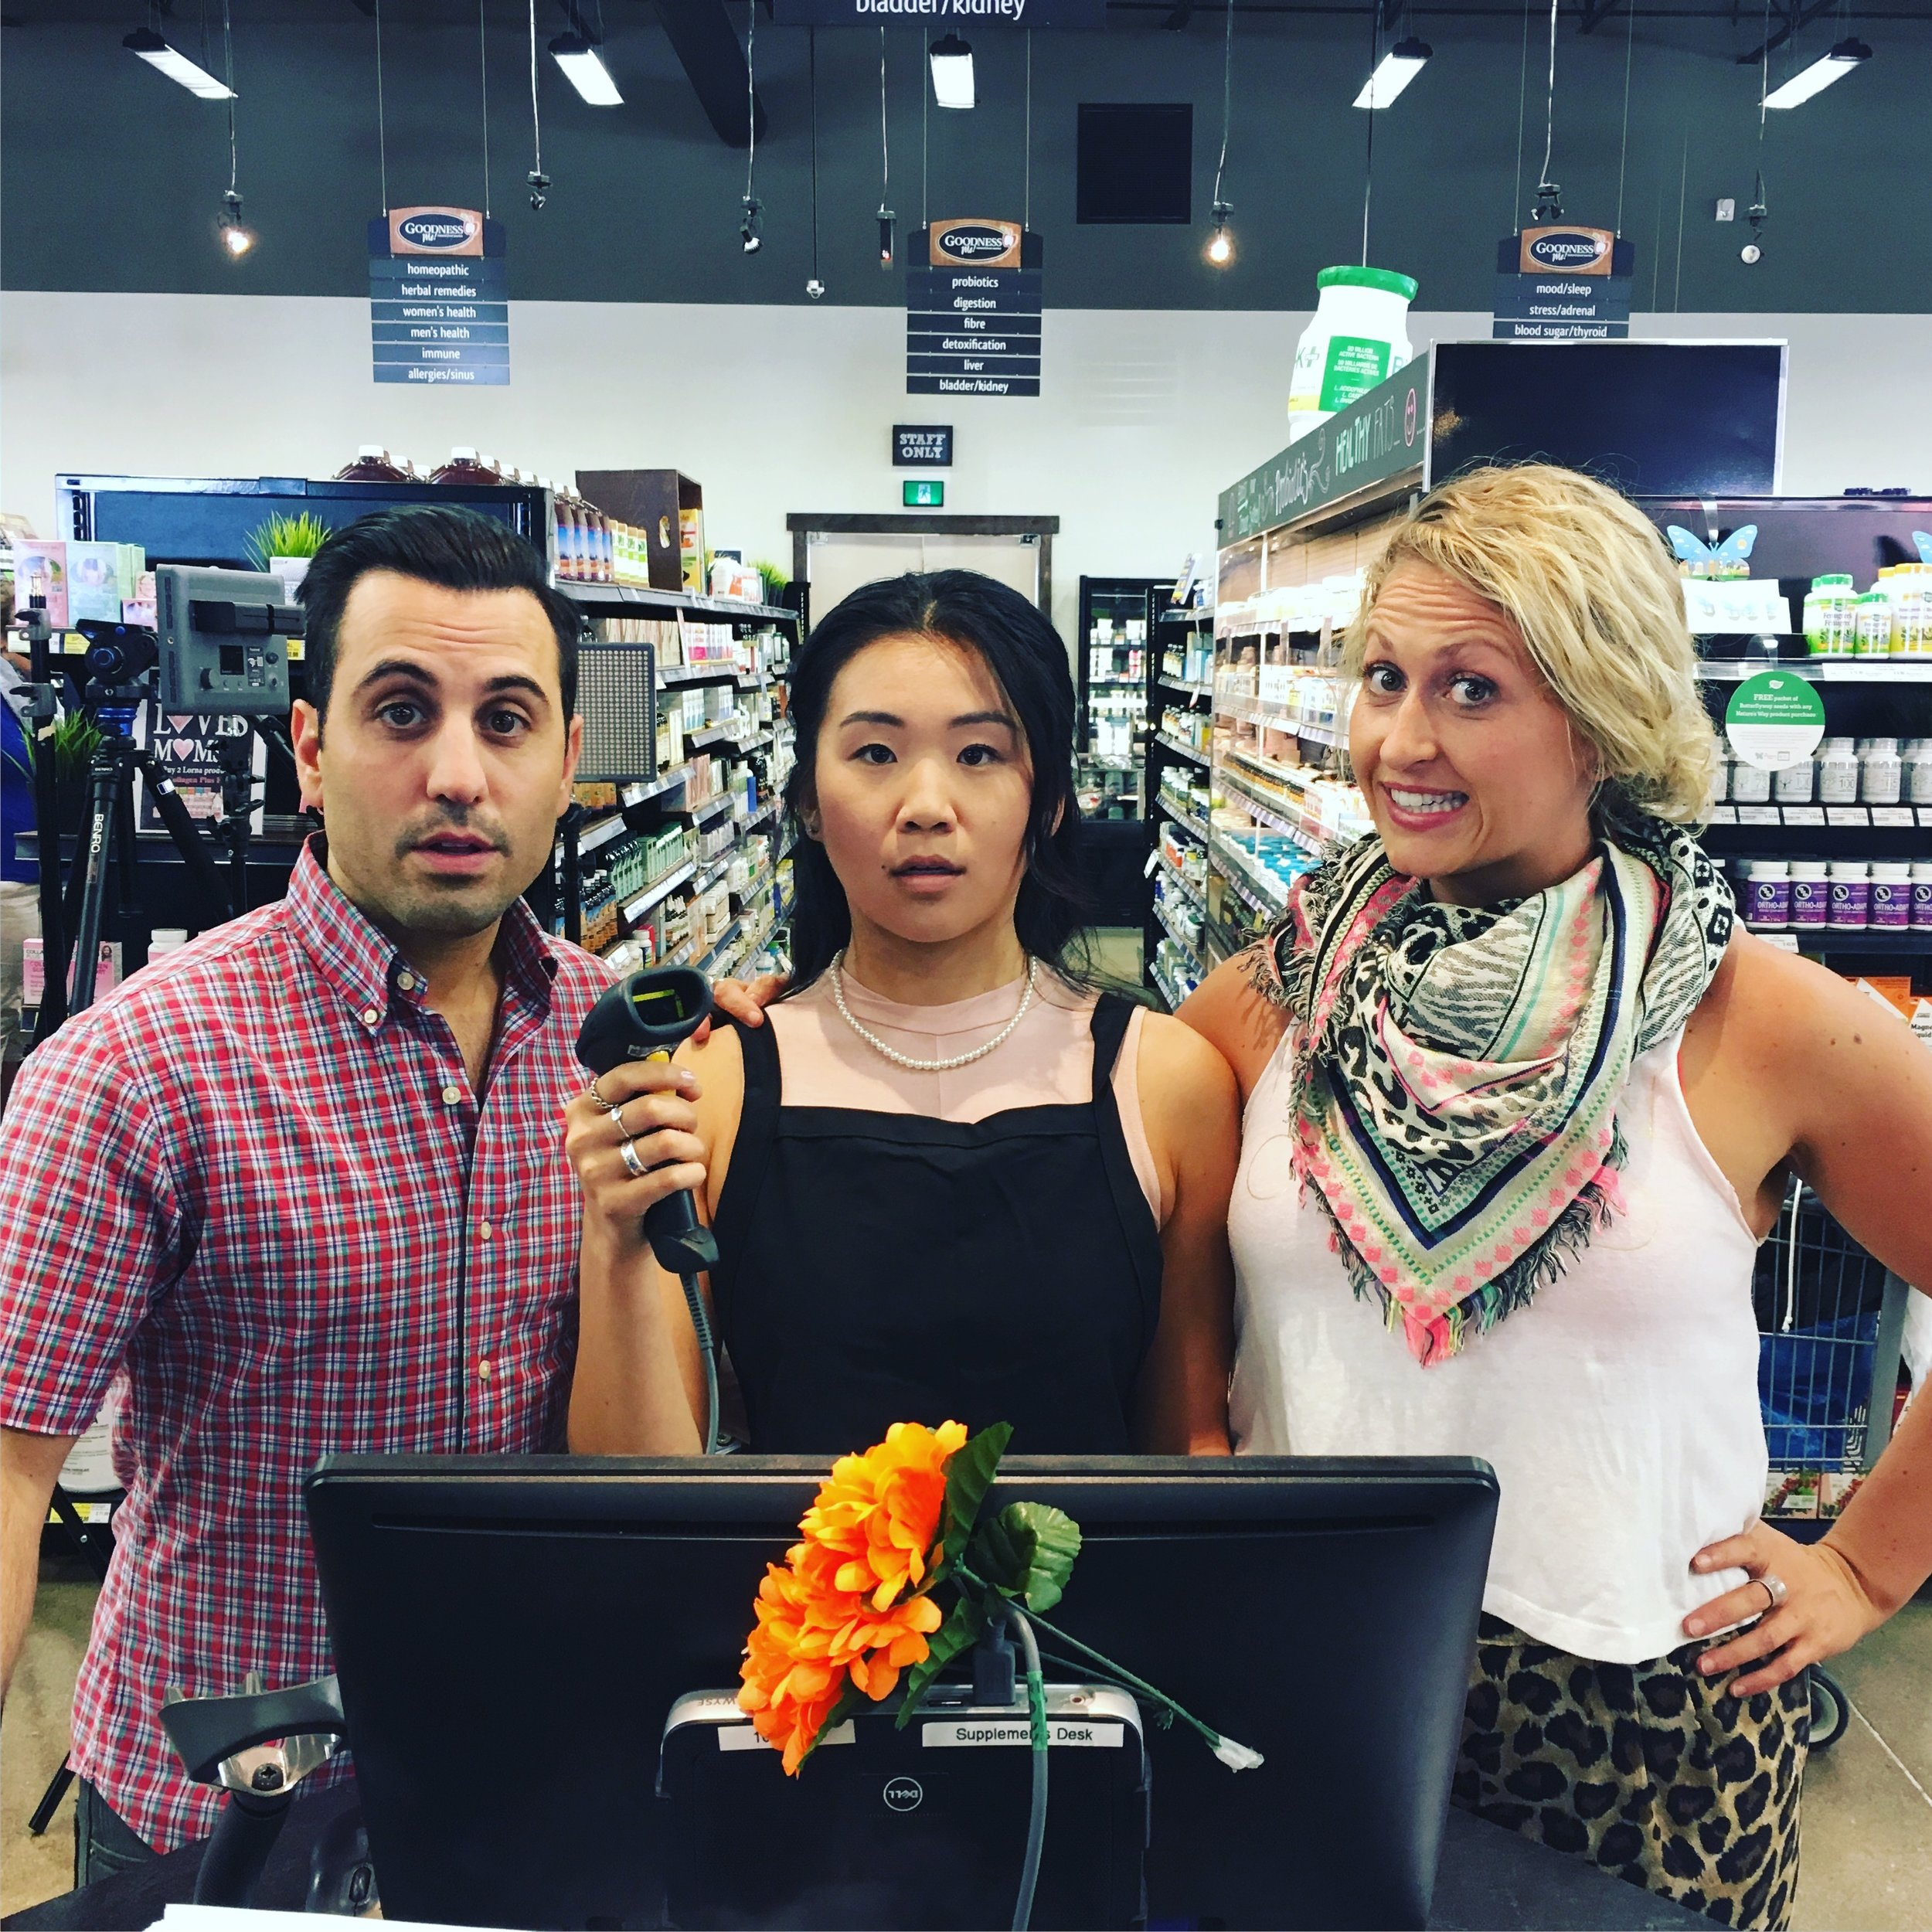 Wholesome Foods, I Love You... Is That OK? cast members Daniel De Santo, Connie Wang, and Krista Hovsepian